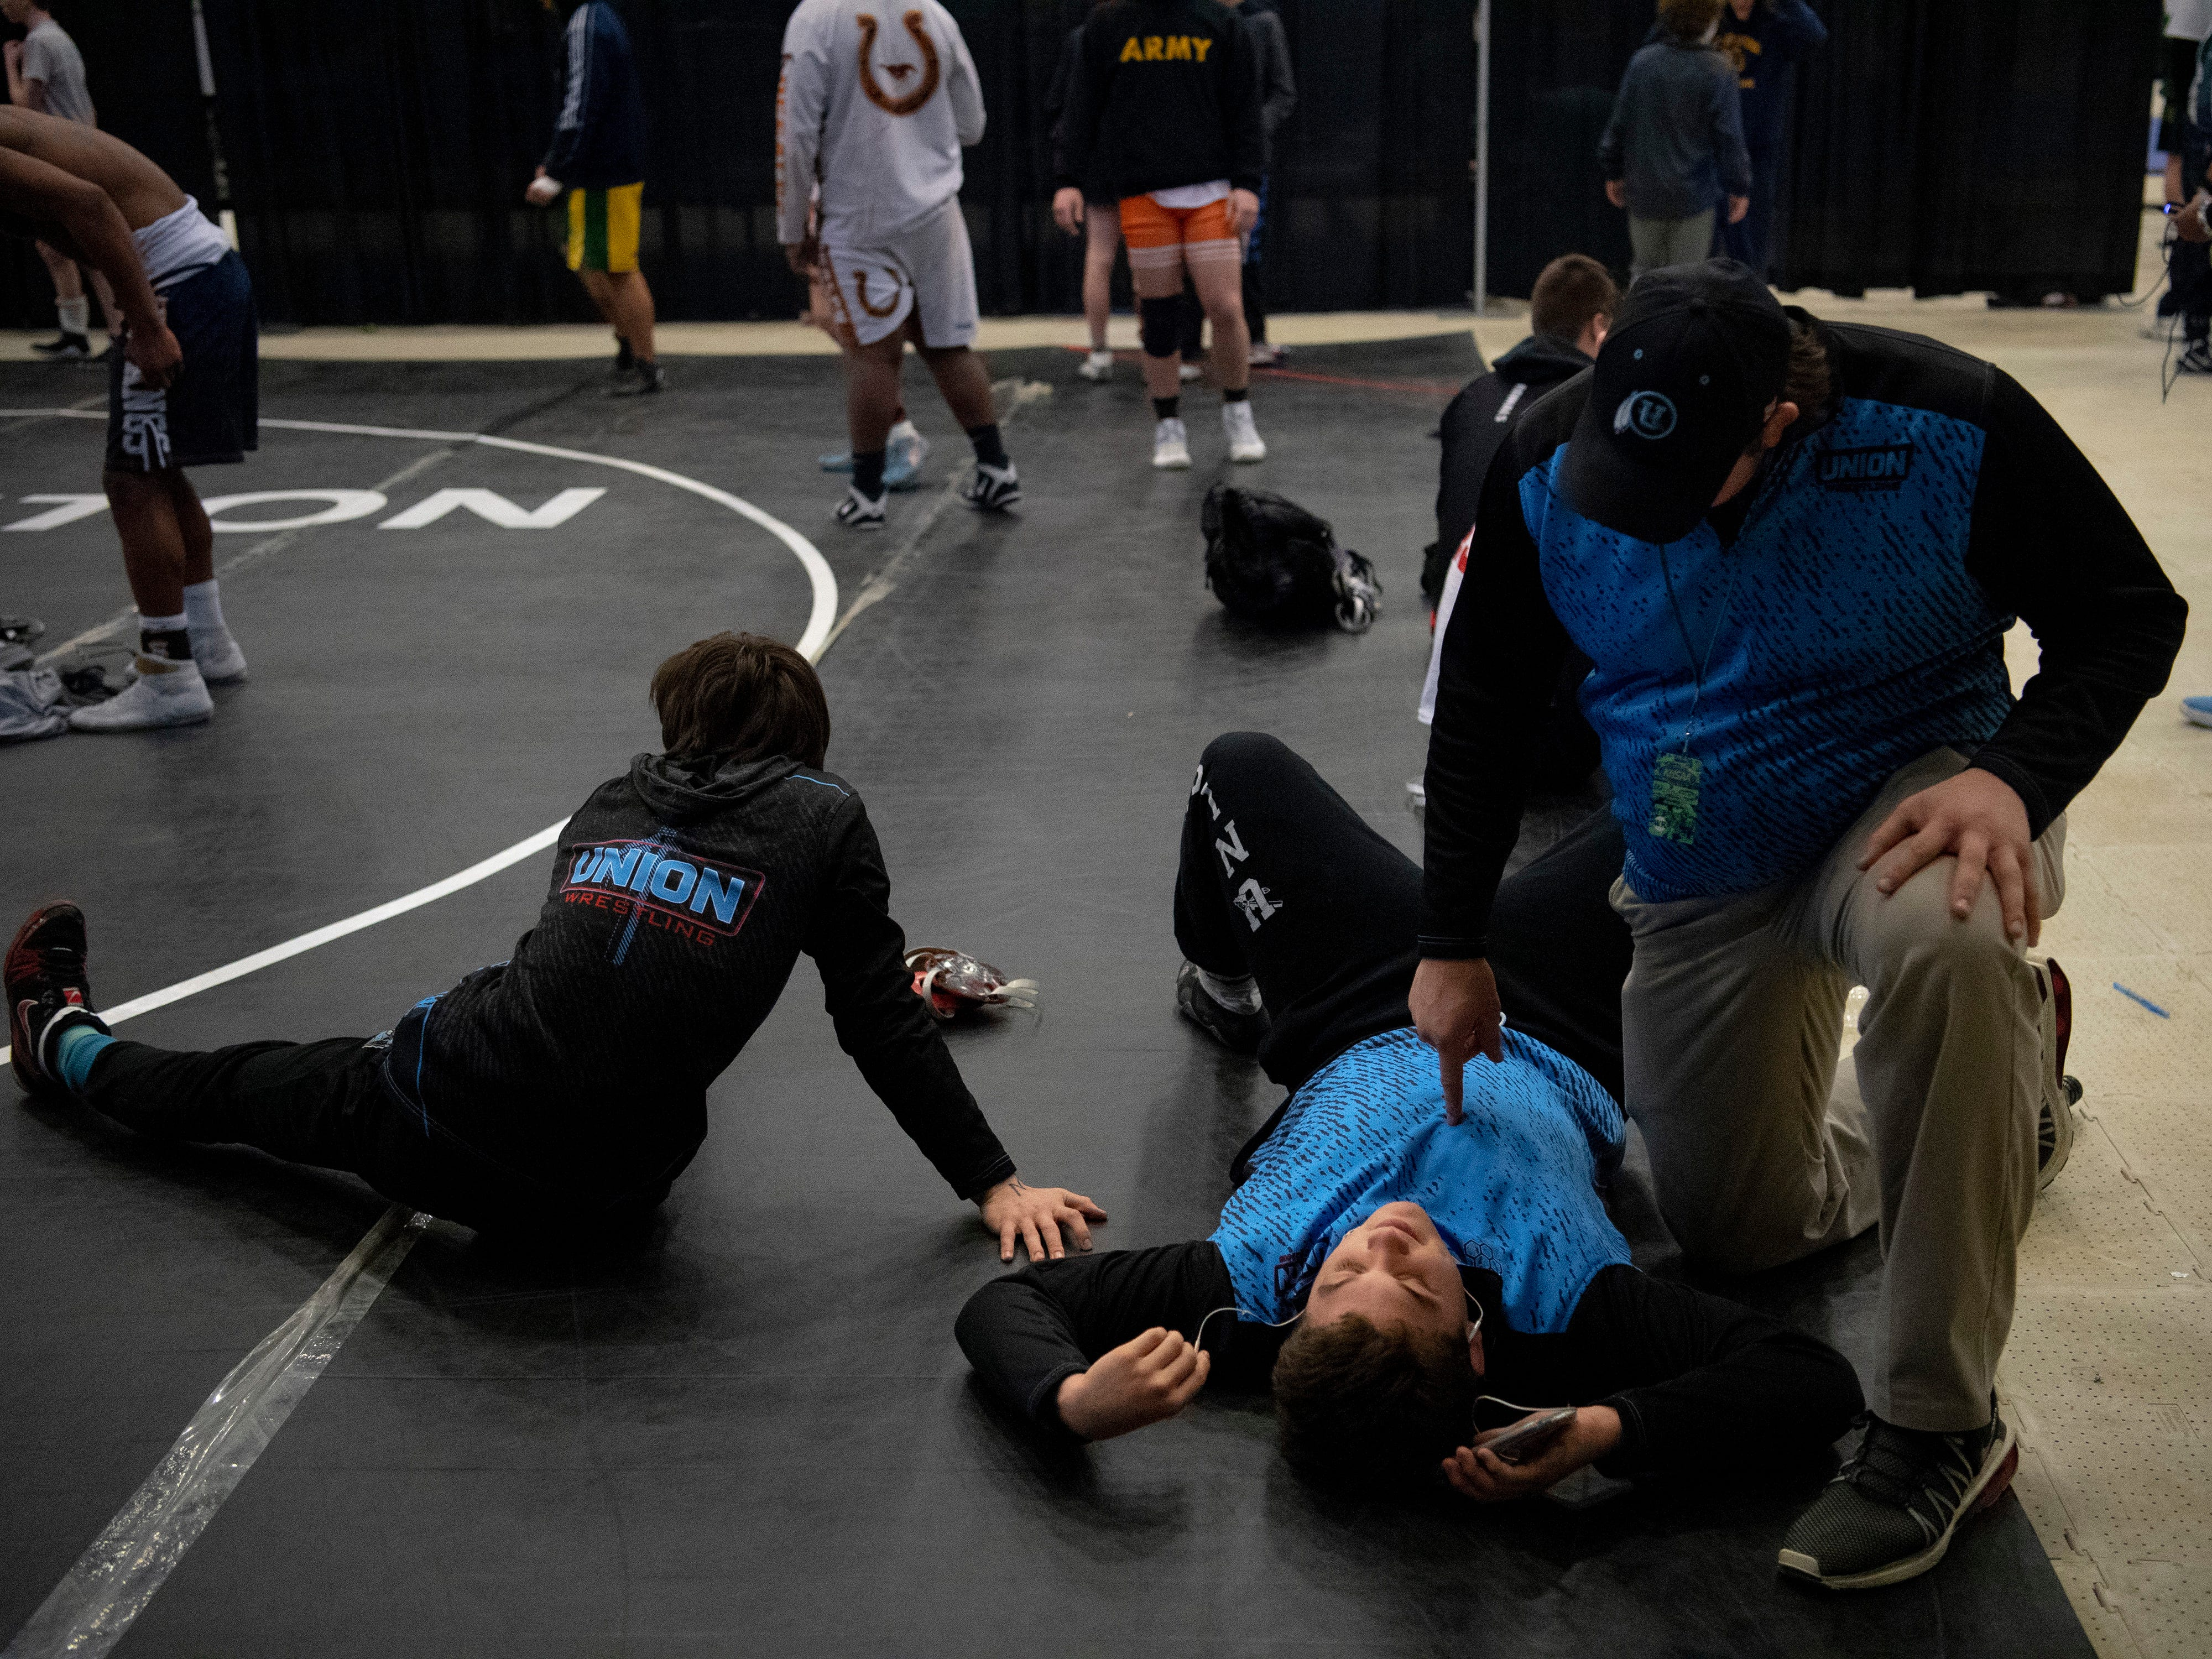 Union County coach Brooks Black, right, has a few words of encouragement for Mathias Ervin before his 220 pound semifinal match at the KHSAA State Wrestling Championships at the Alltech Arena in Lexington, Ky., Saturday afternoon.